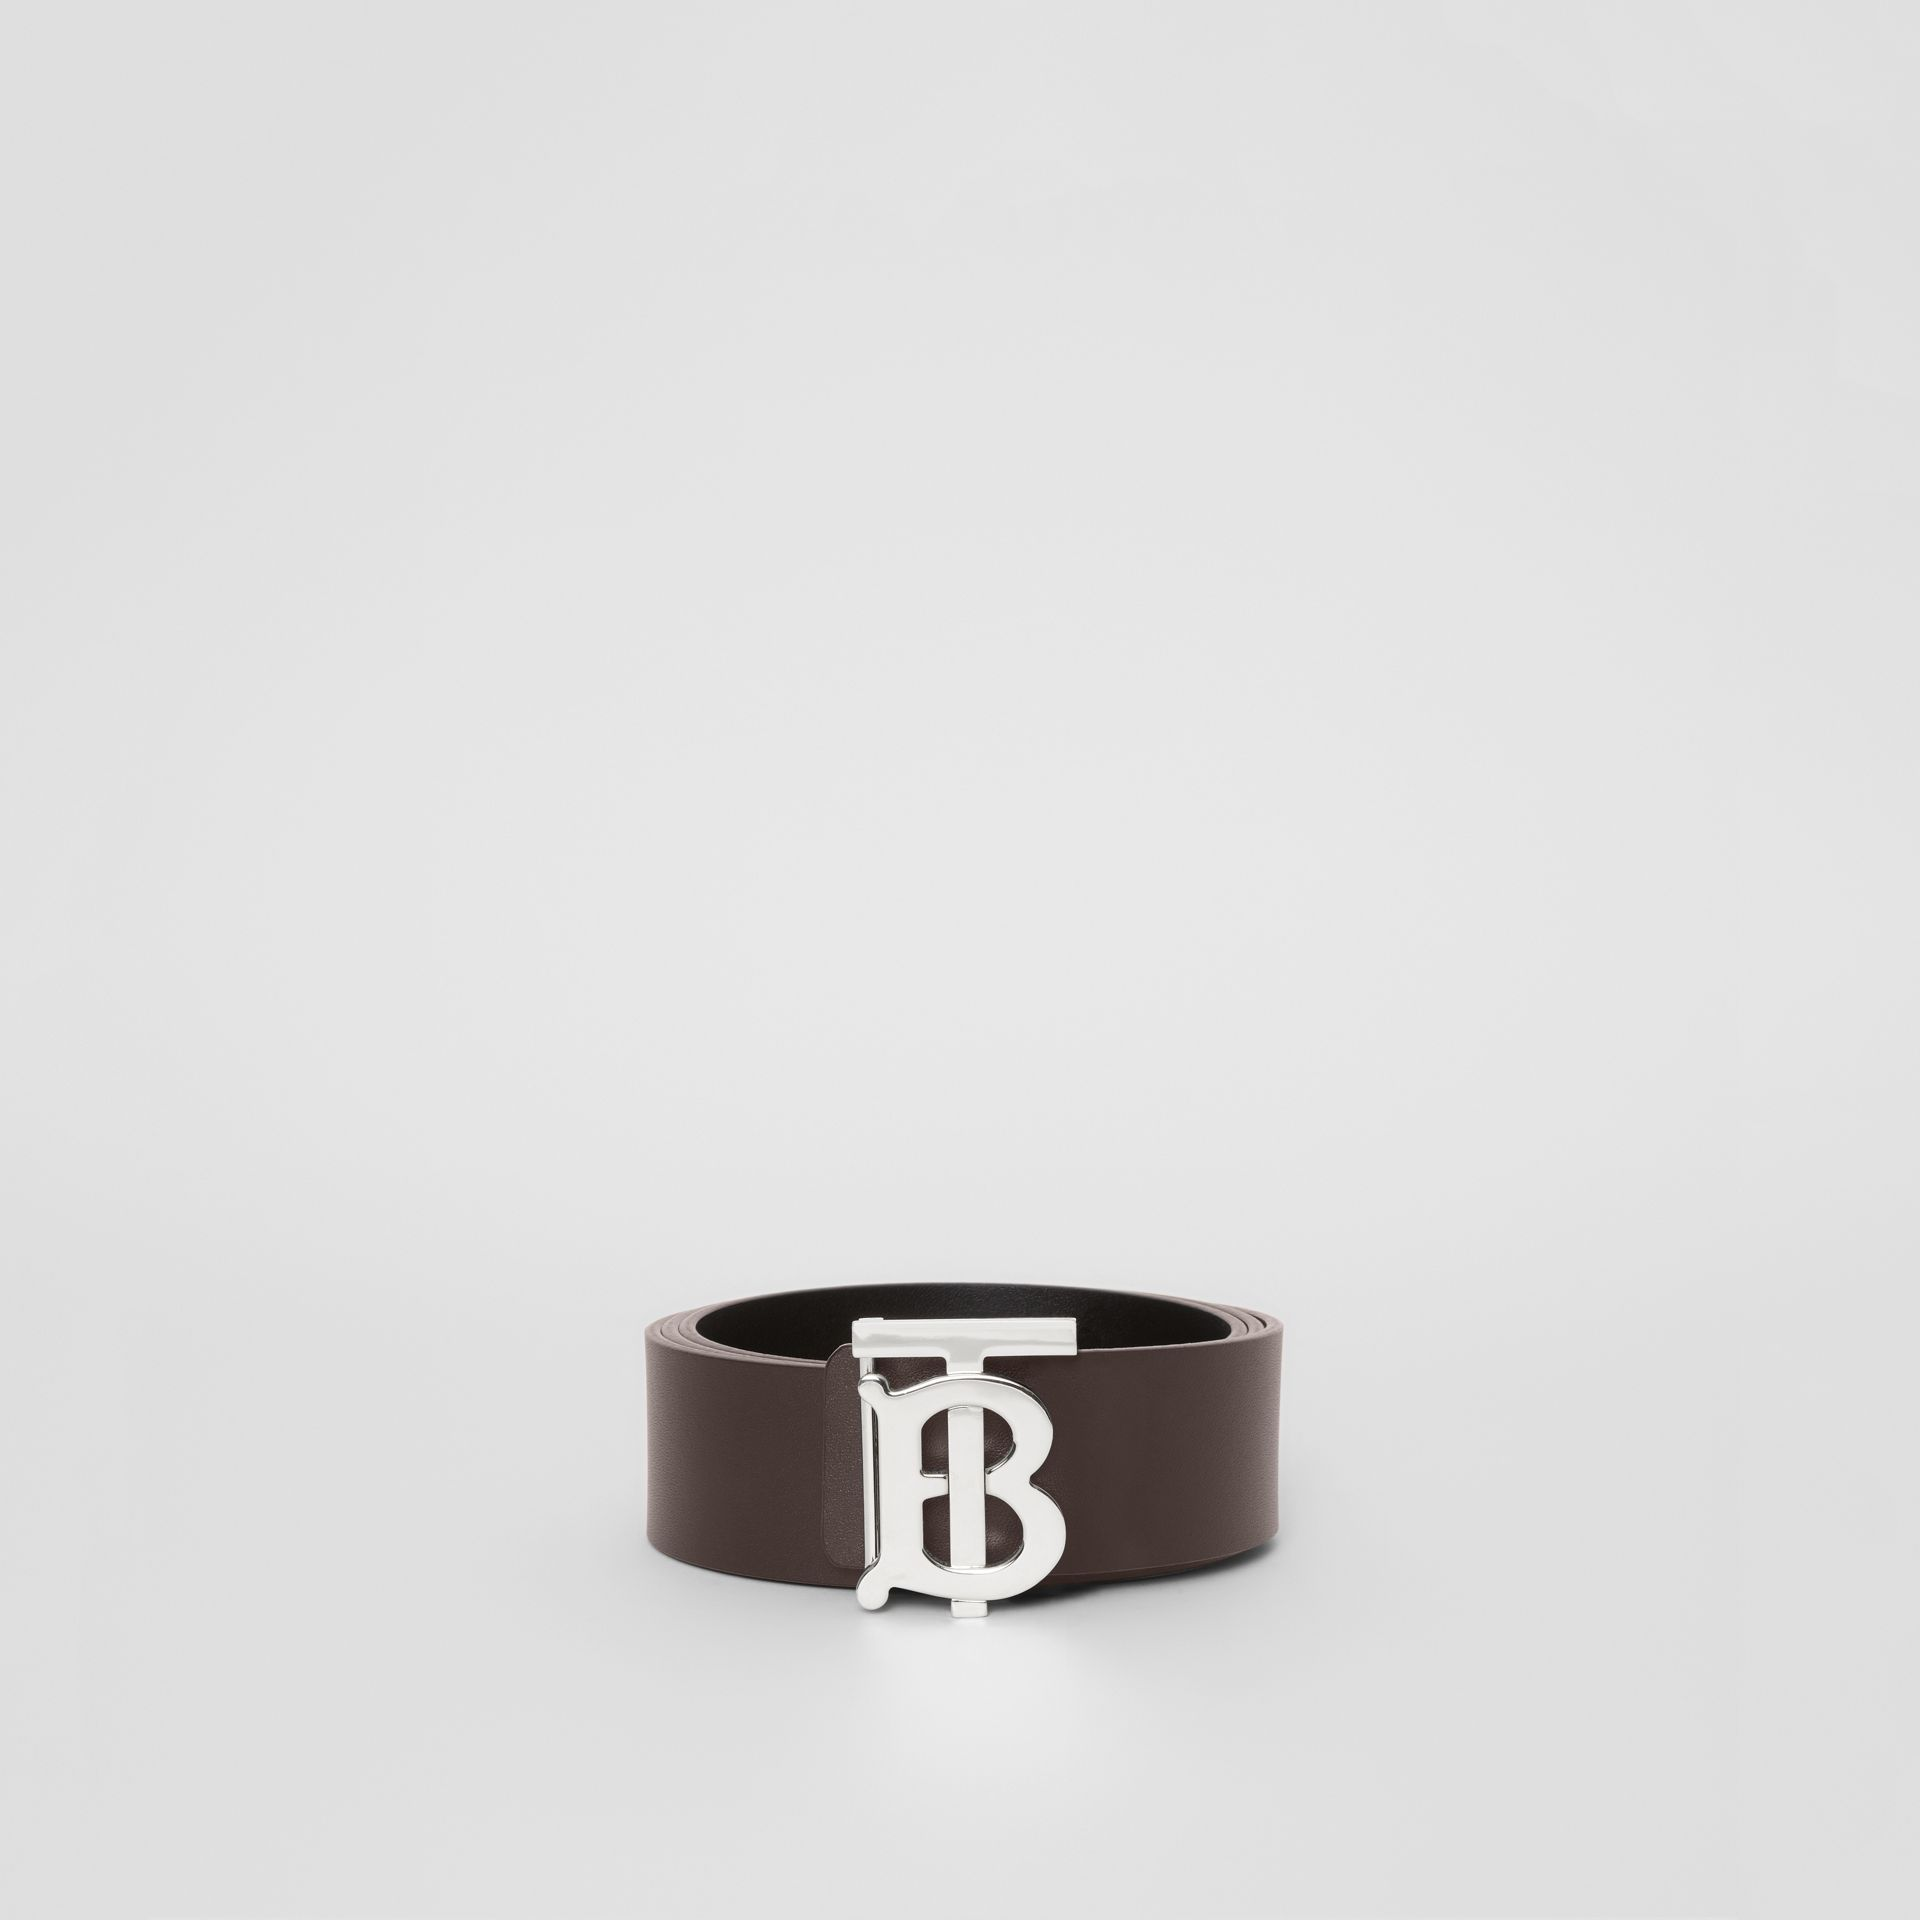 Reversible Monogram Motif Leather Belt in Black/malt Brown - Men | Burberry United States - gallery image 6